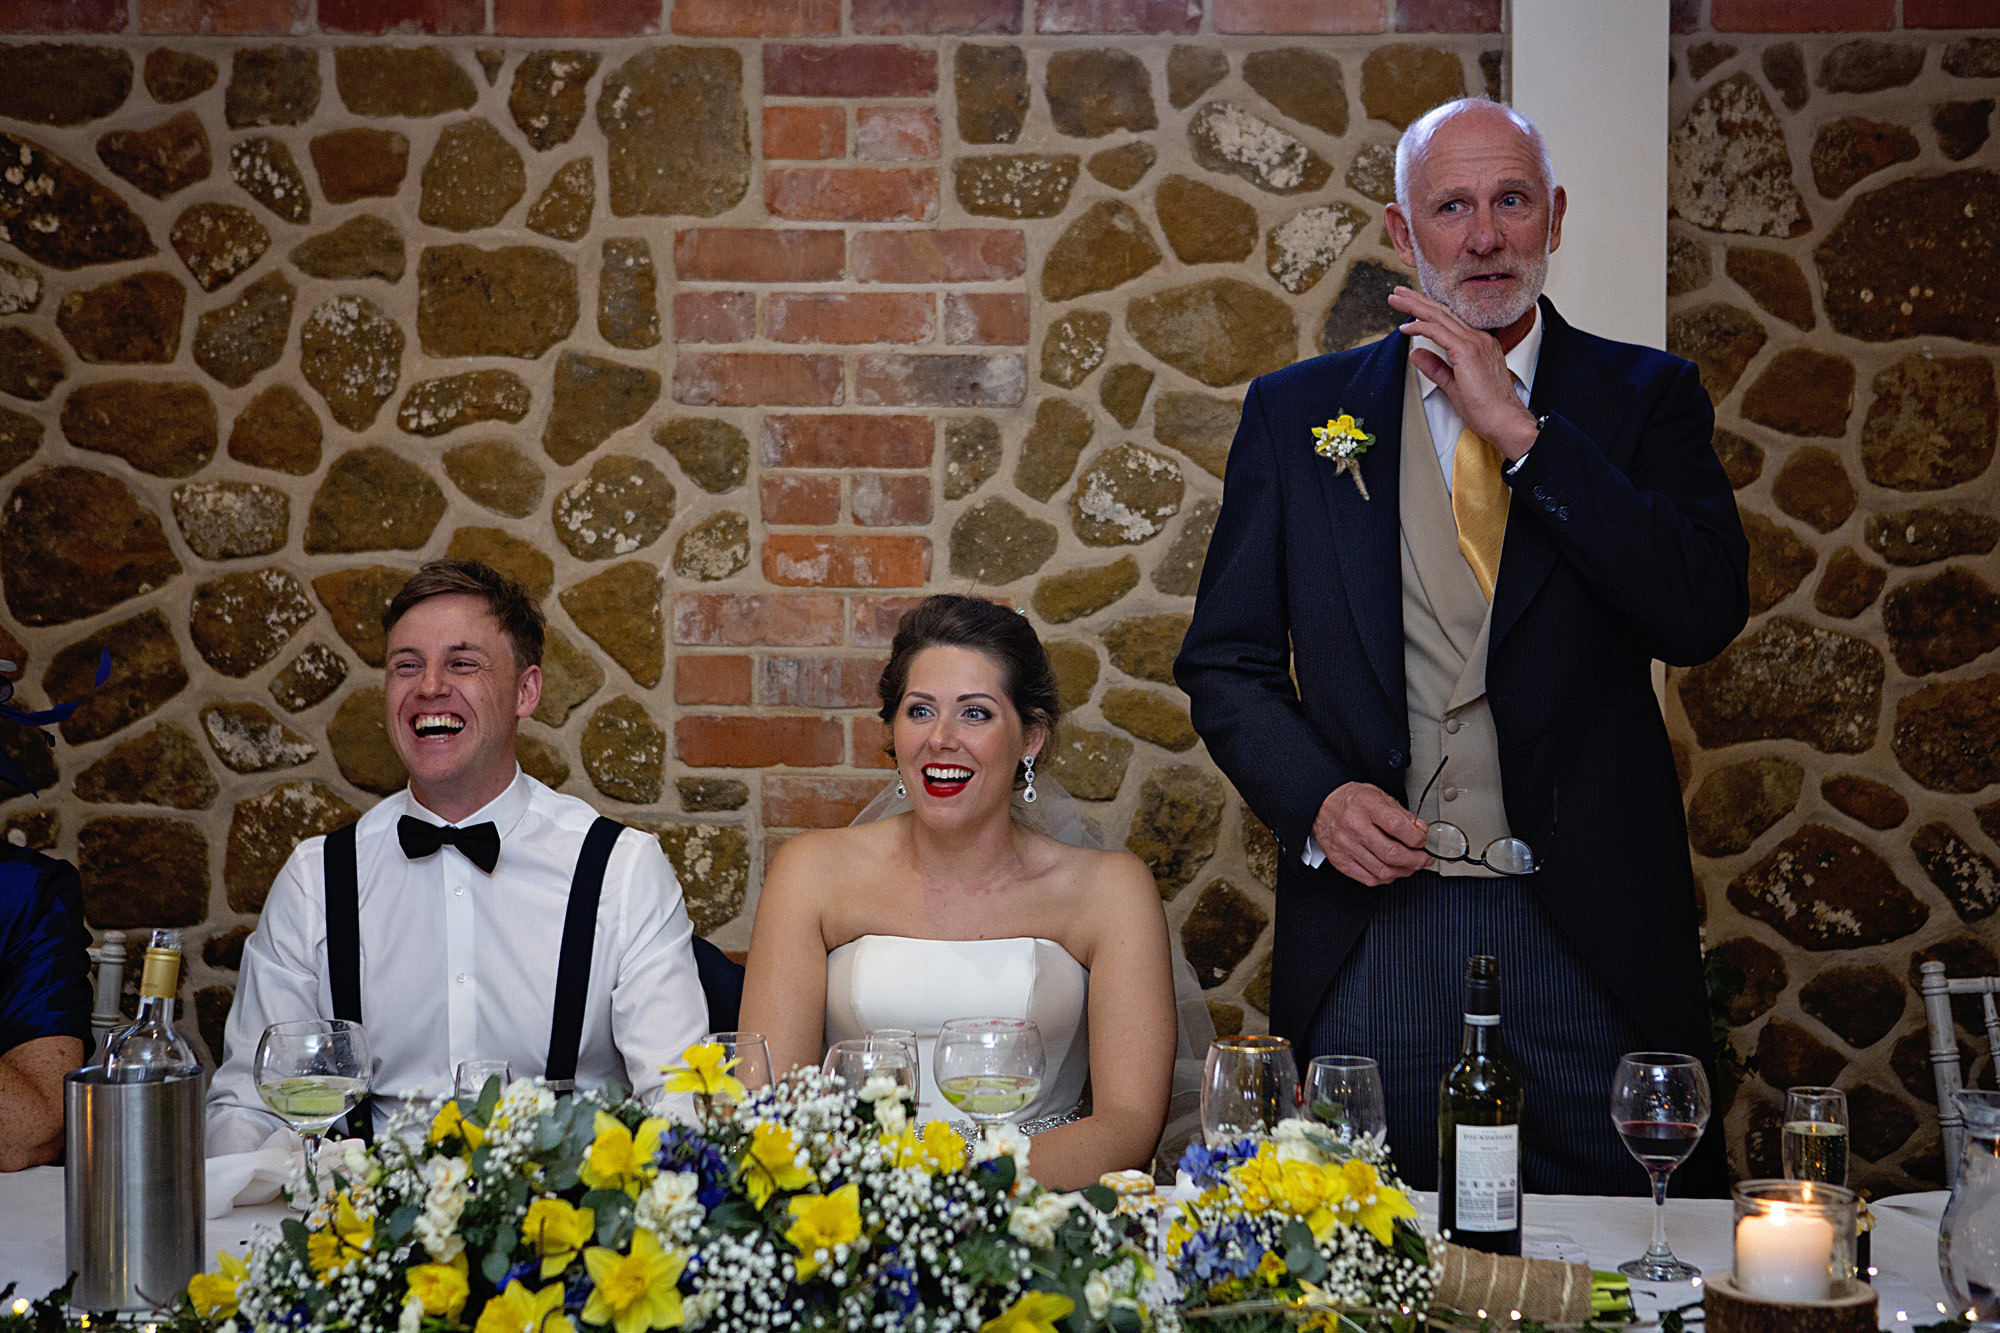 heacham-manor-wedding-photos (40).jpg